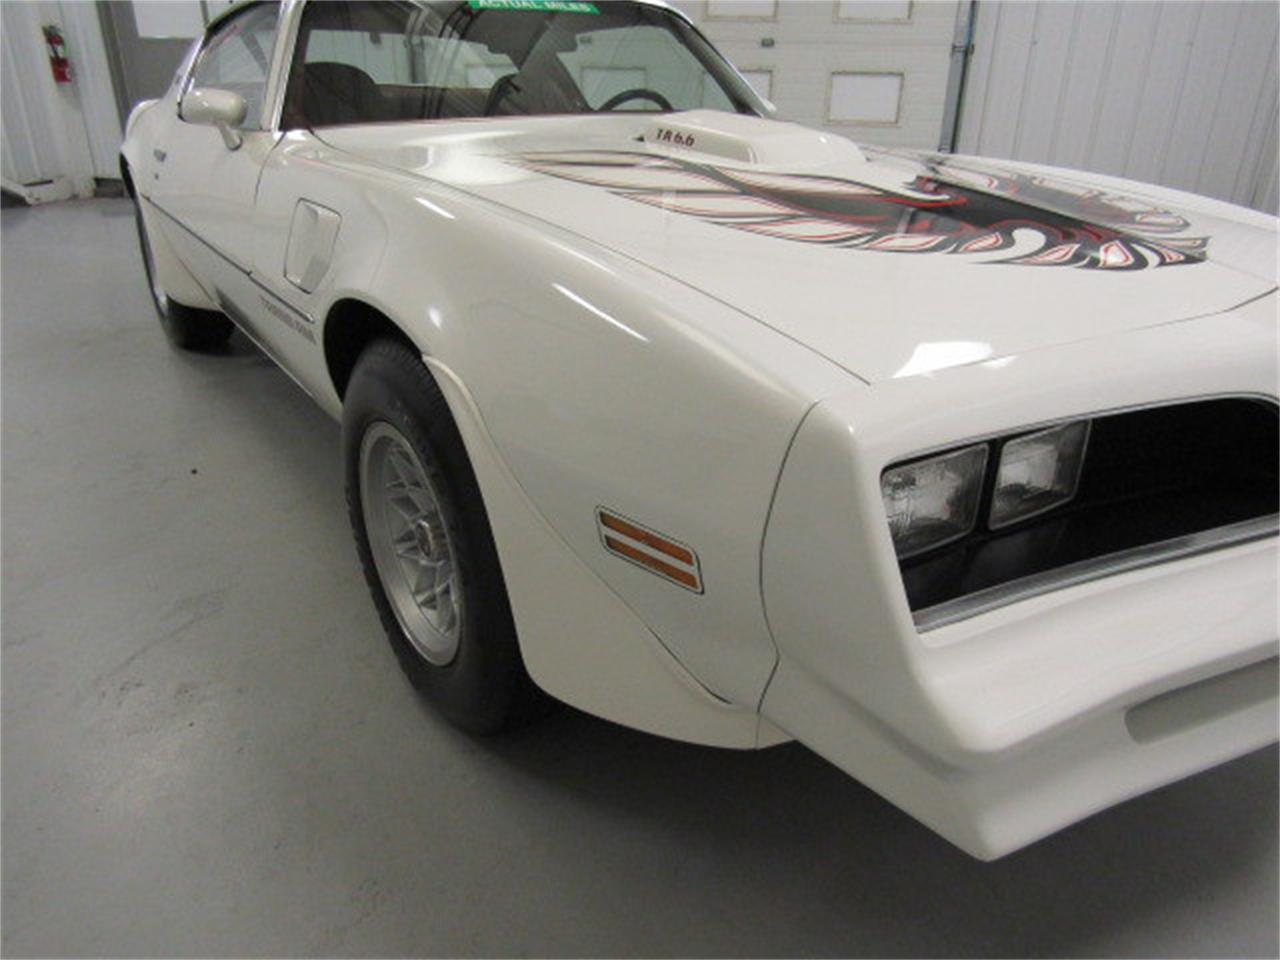 Large Picture of '78 Pontiac Firebird located in Christiansburg Virginia - $39,000.00 - JLC2